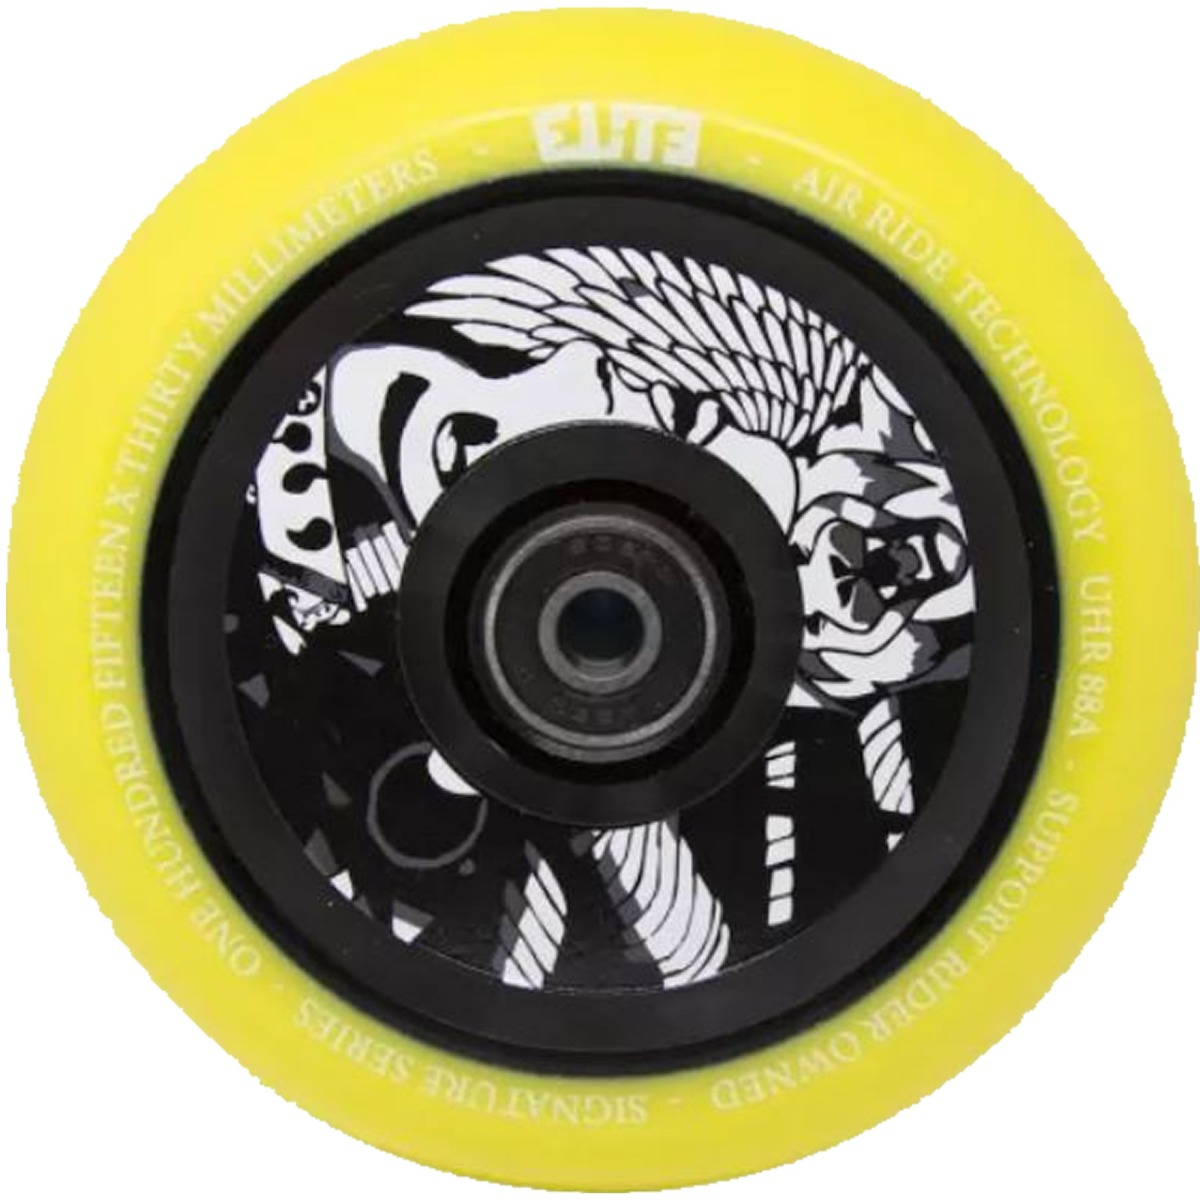 An image of Elite X Supreme Air Ride 110mm Scooter Wheels - Yellow Black